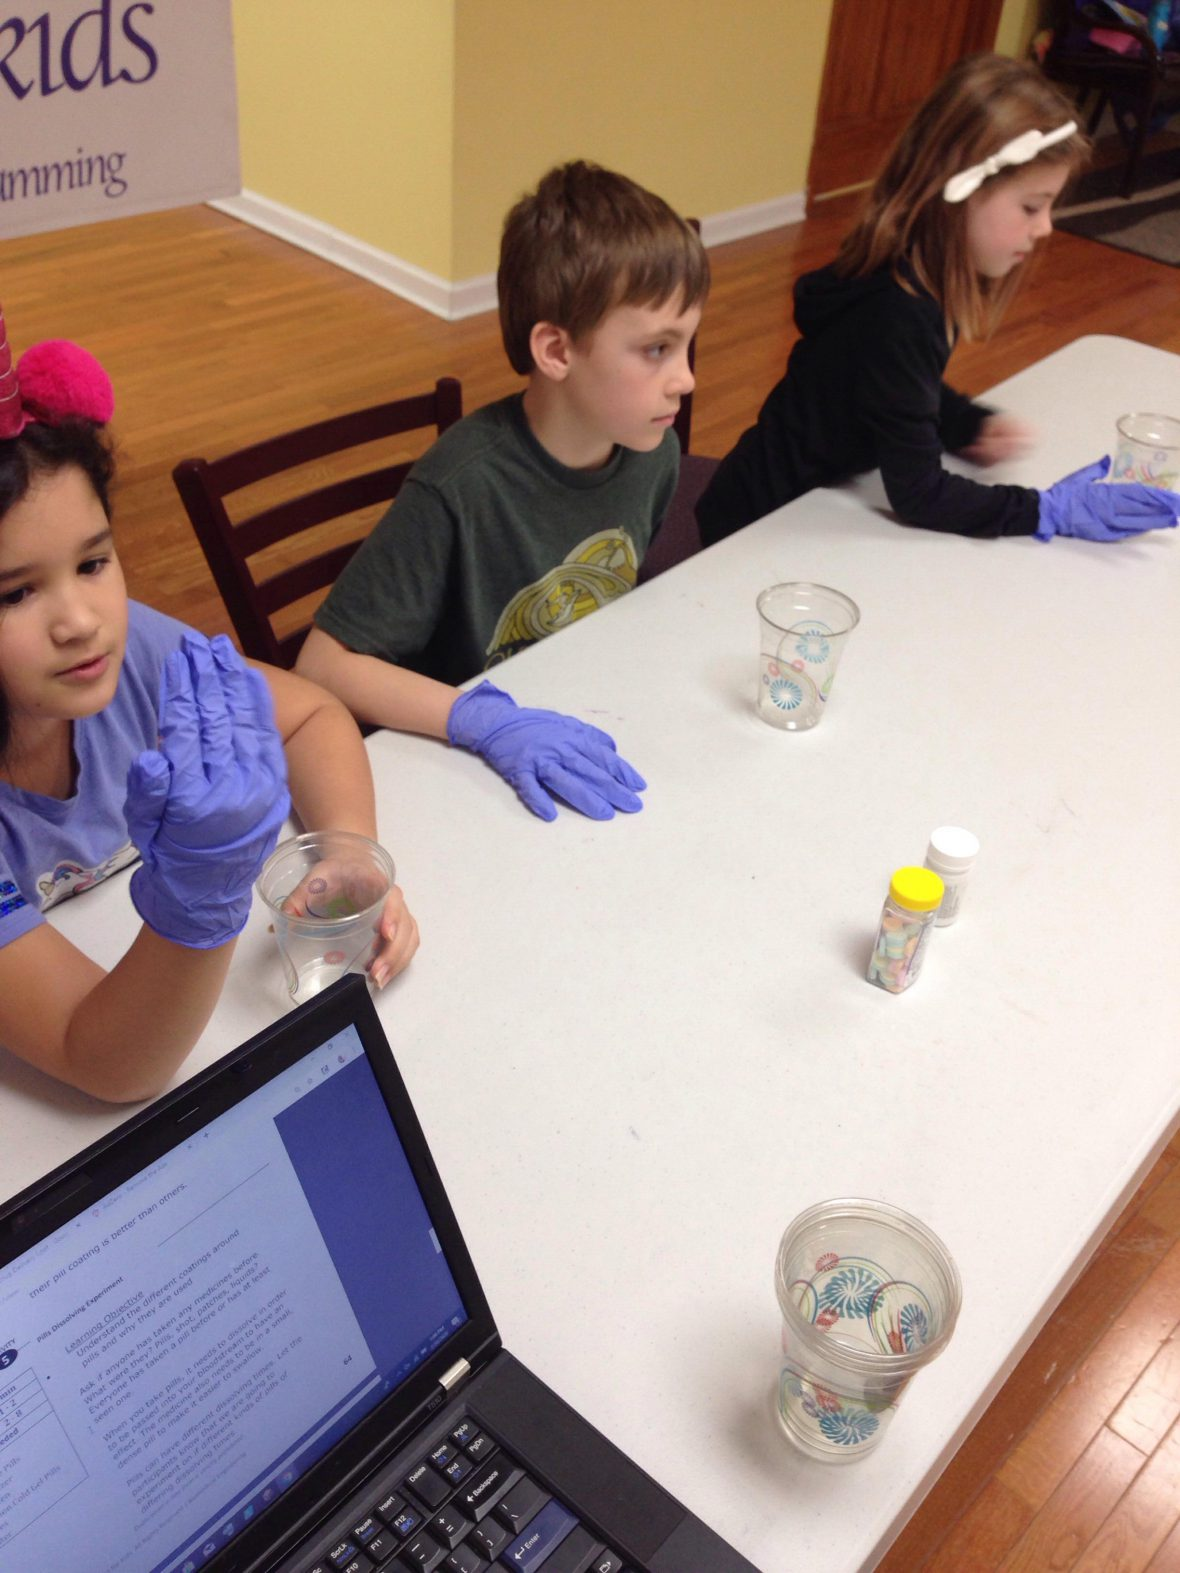 Biomedical Workshops For Kids - Fox Business - Medical Jobs